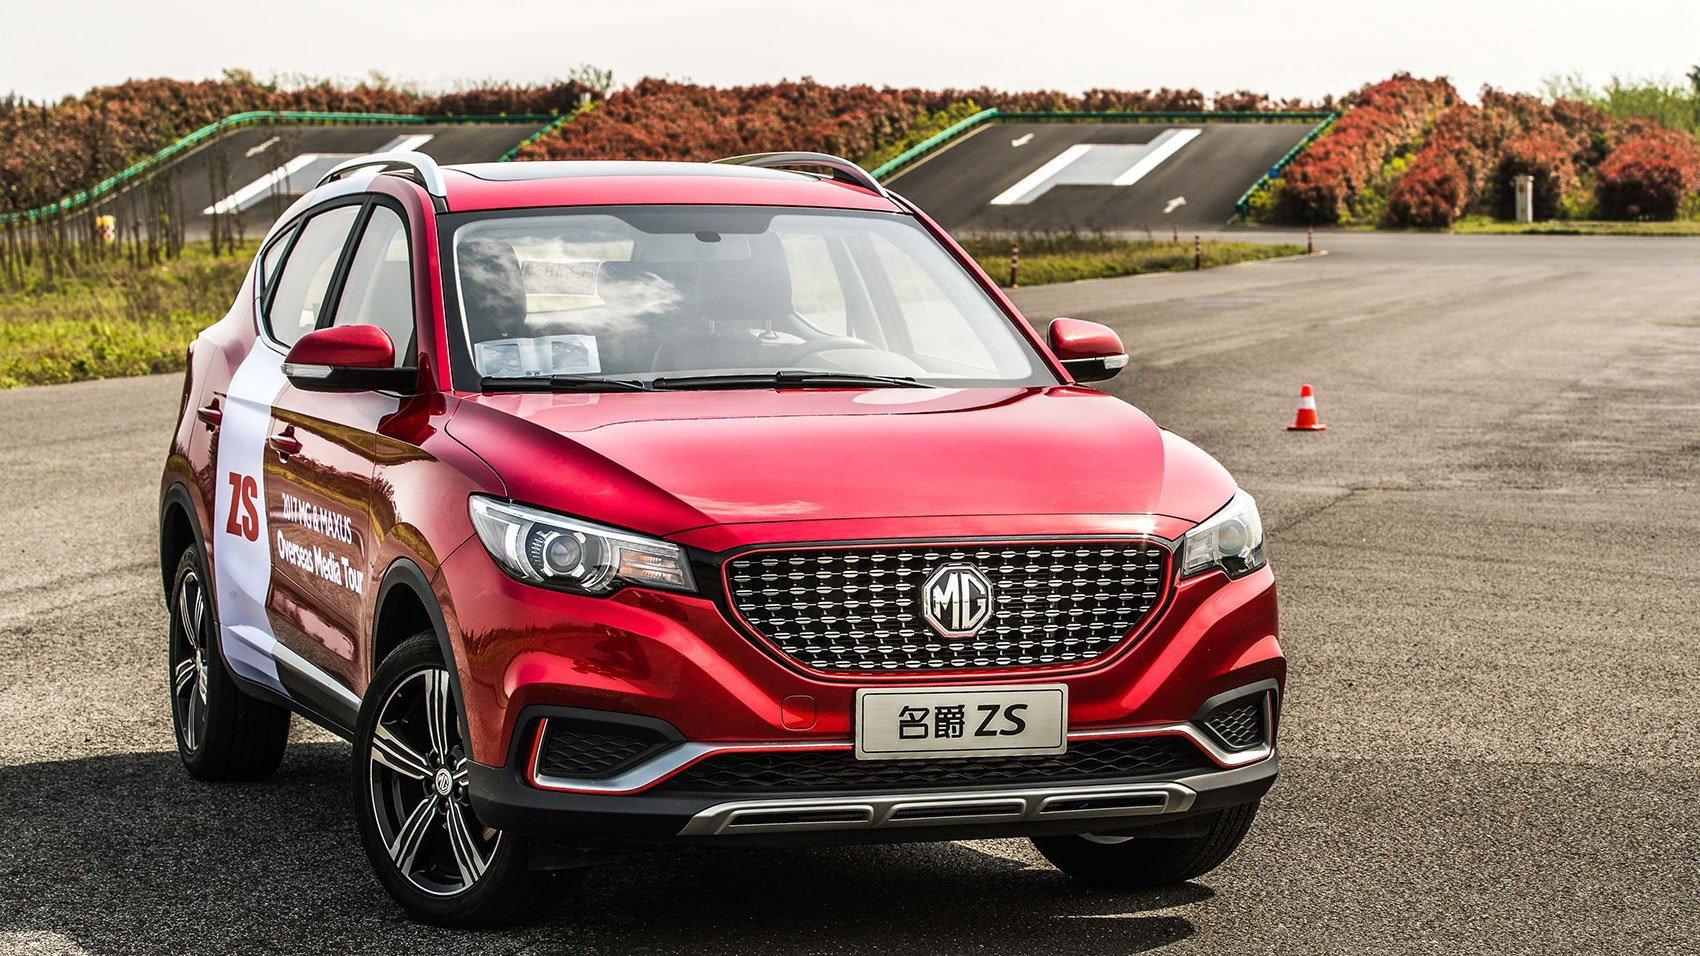 Deeply dished grille on MG ZS